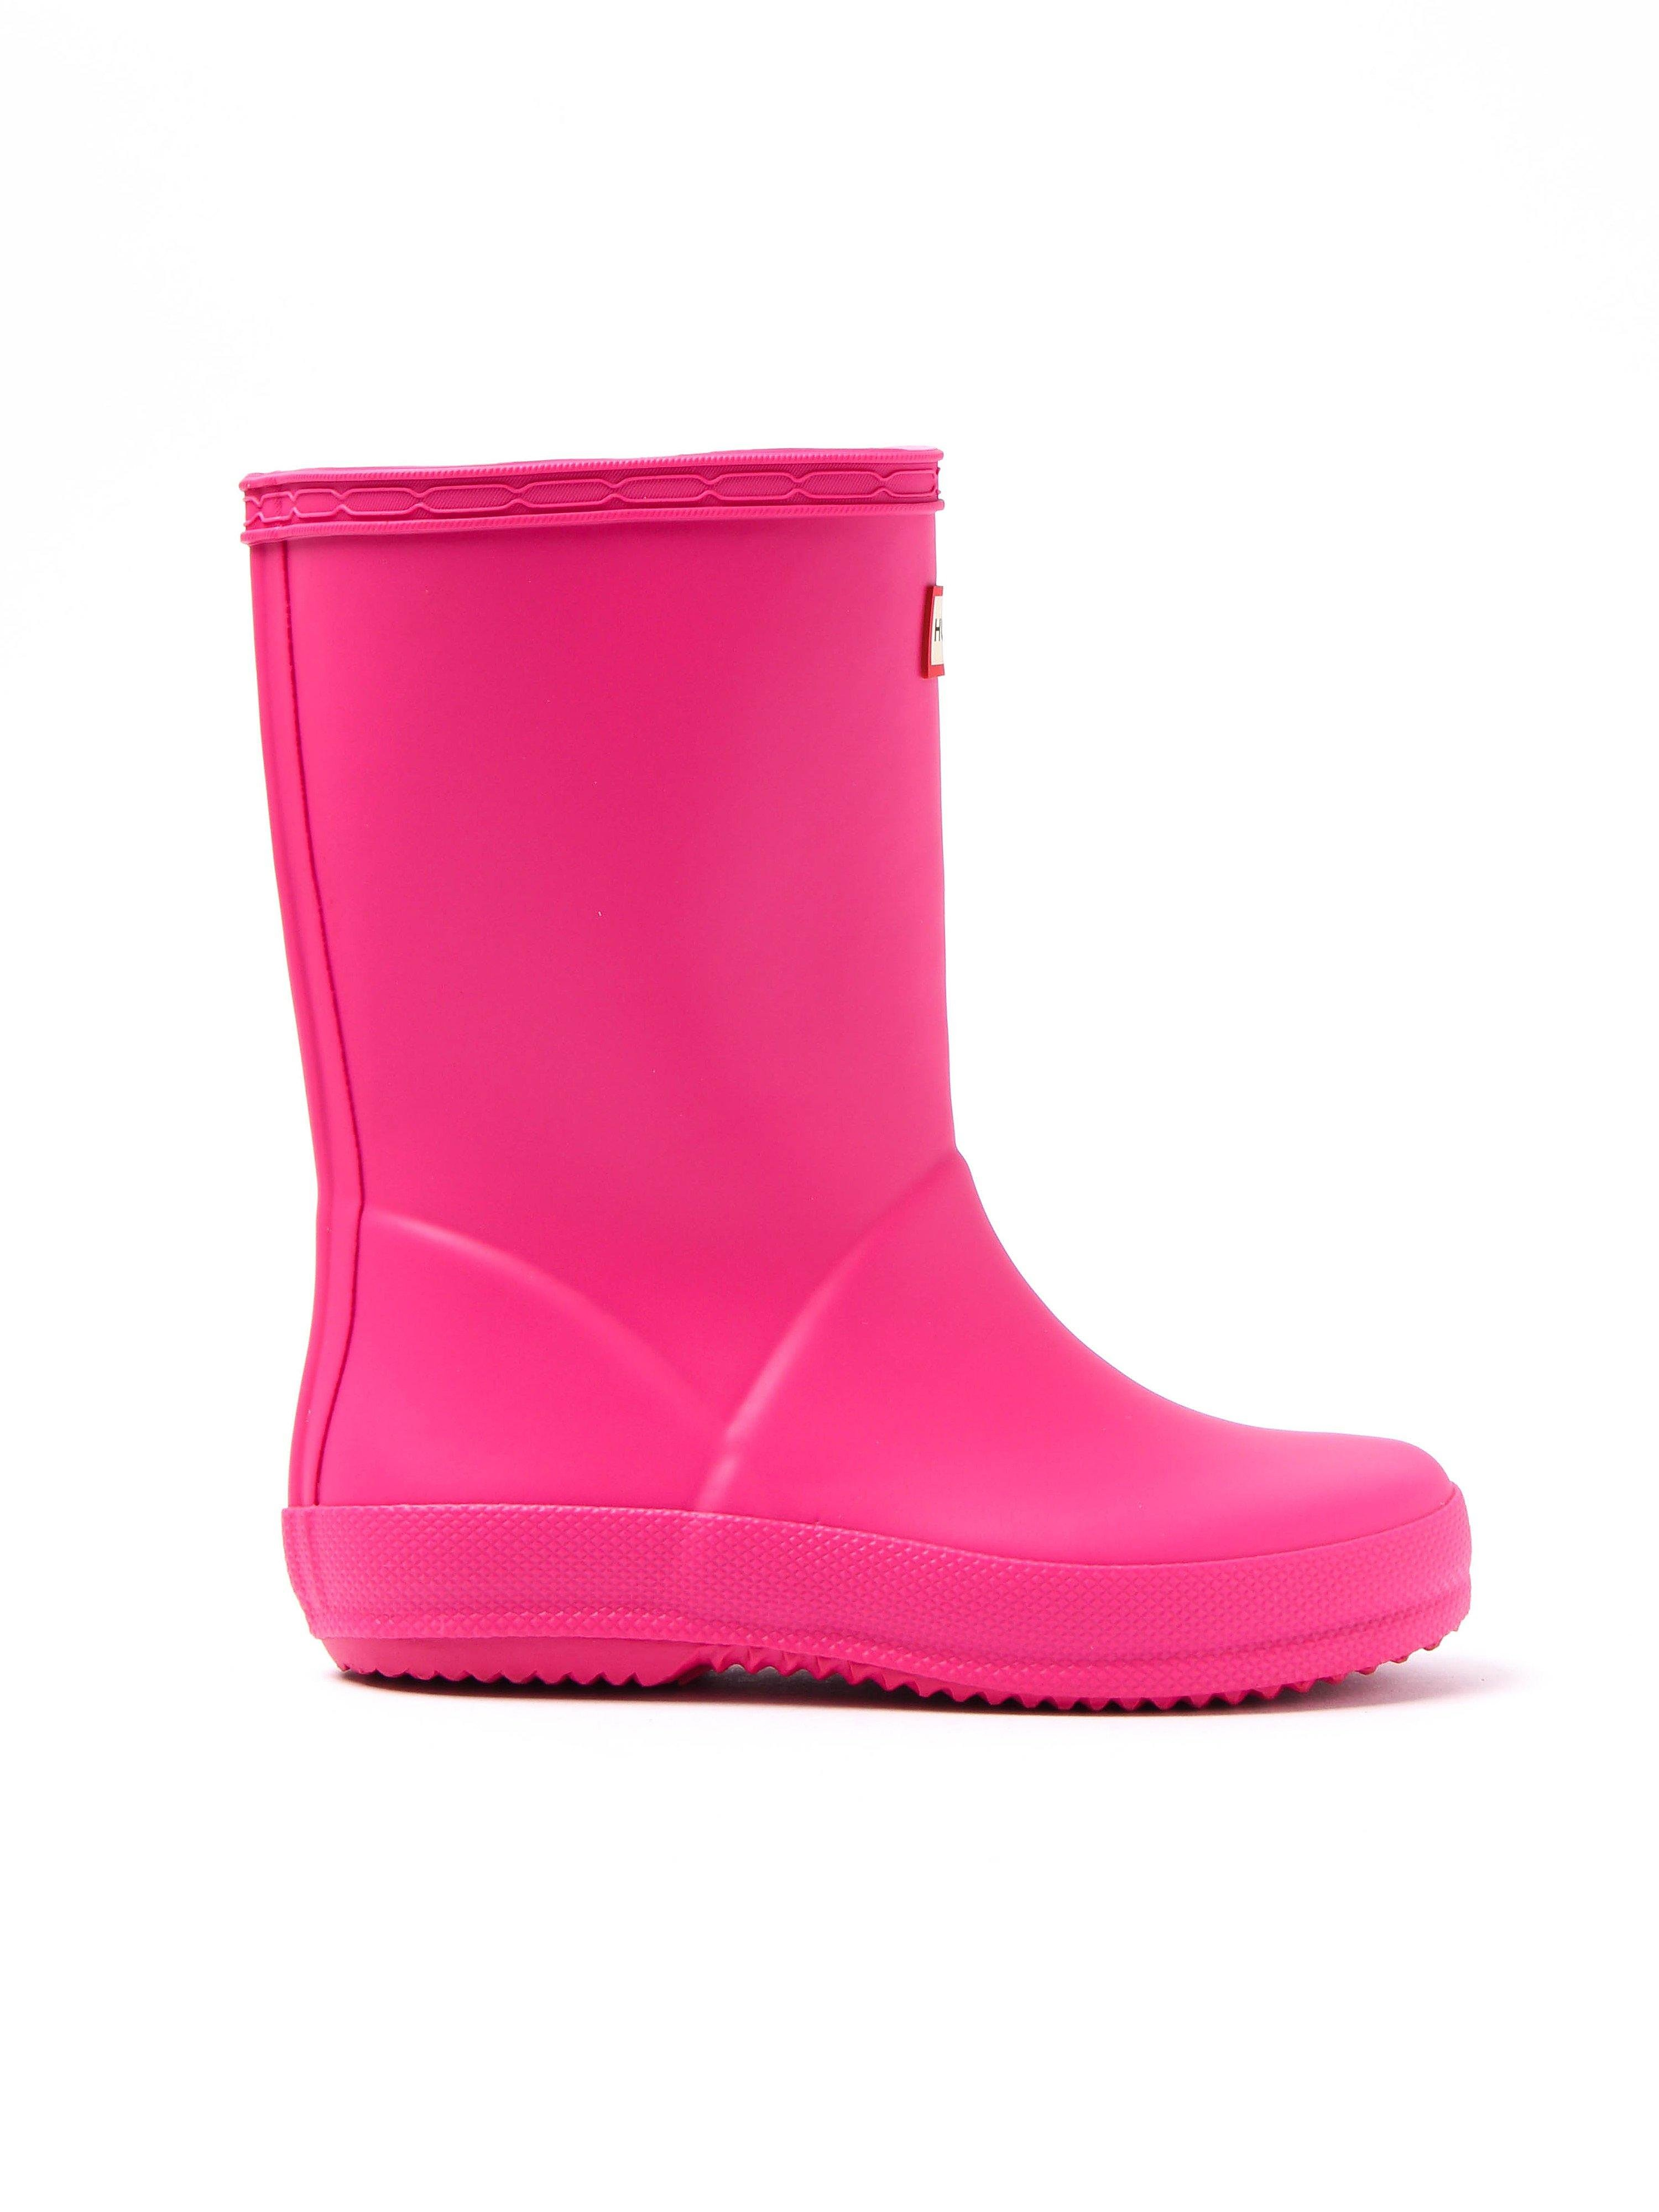 Hunter Wellies Infant First Classic Wellington Boots - Pink